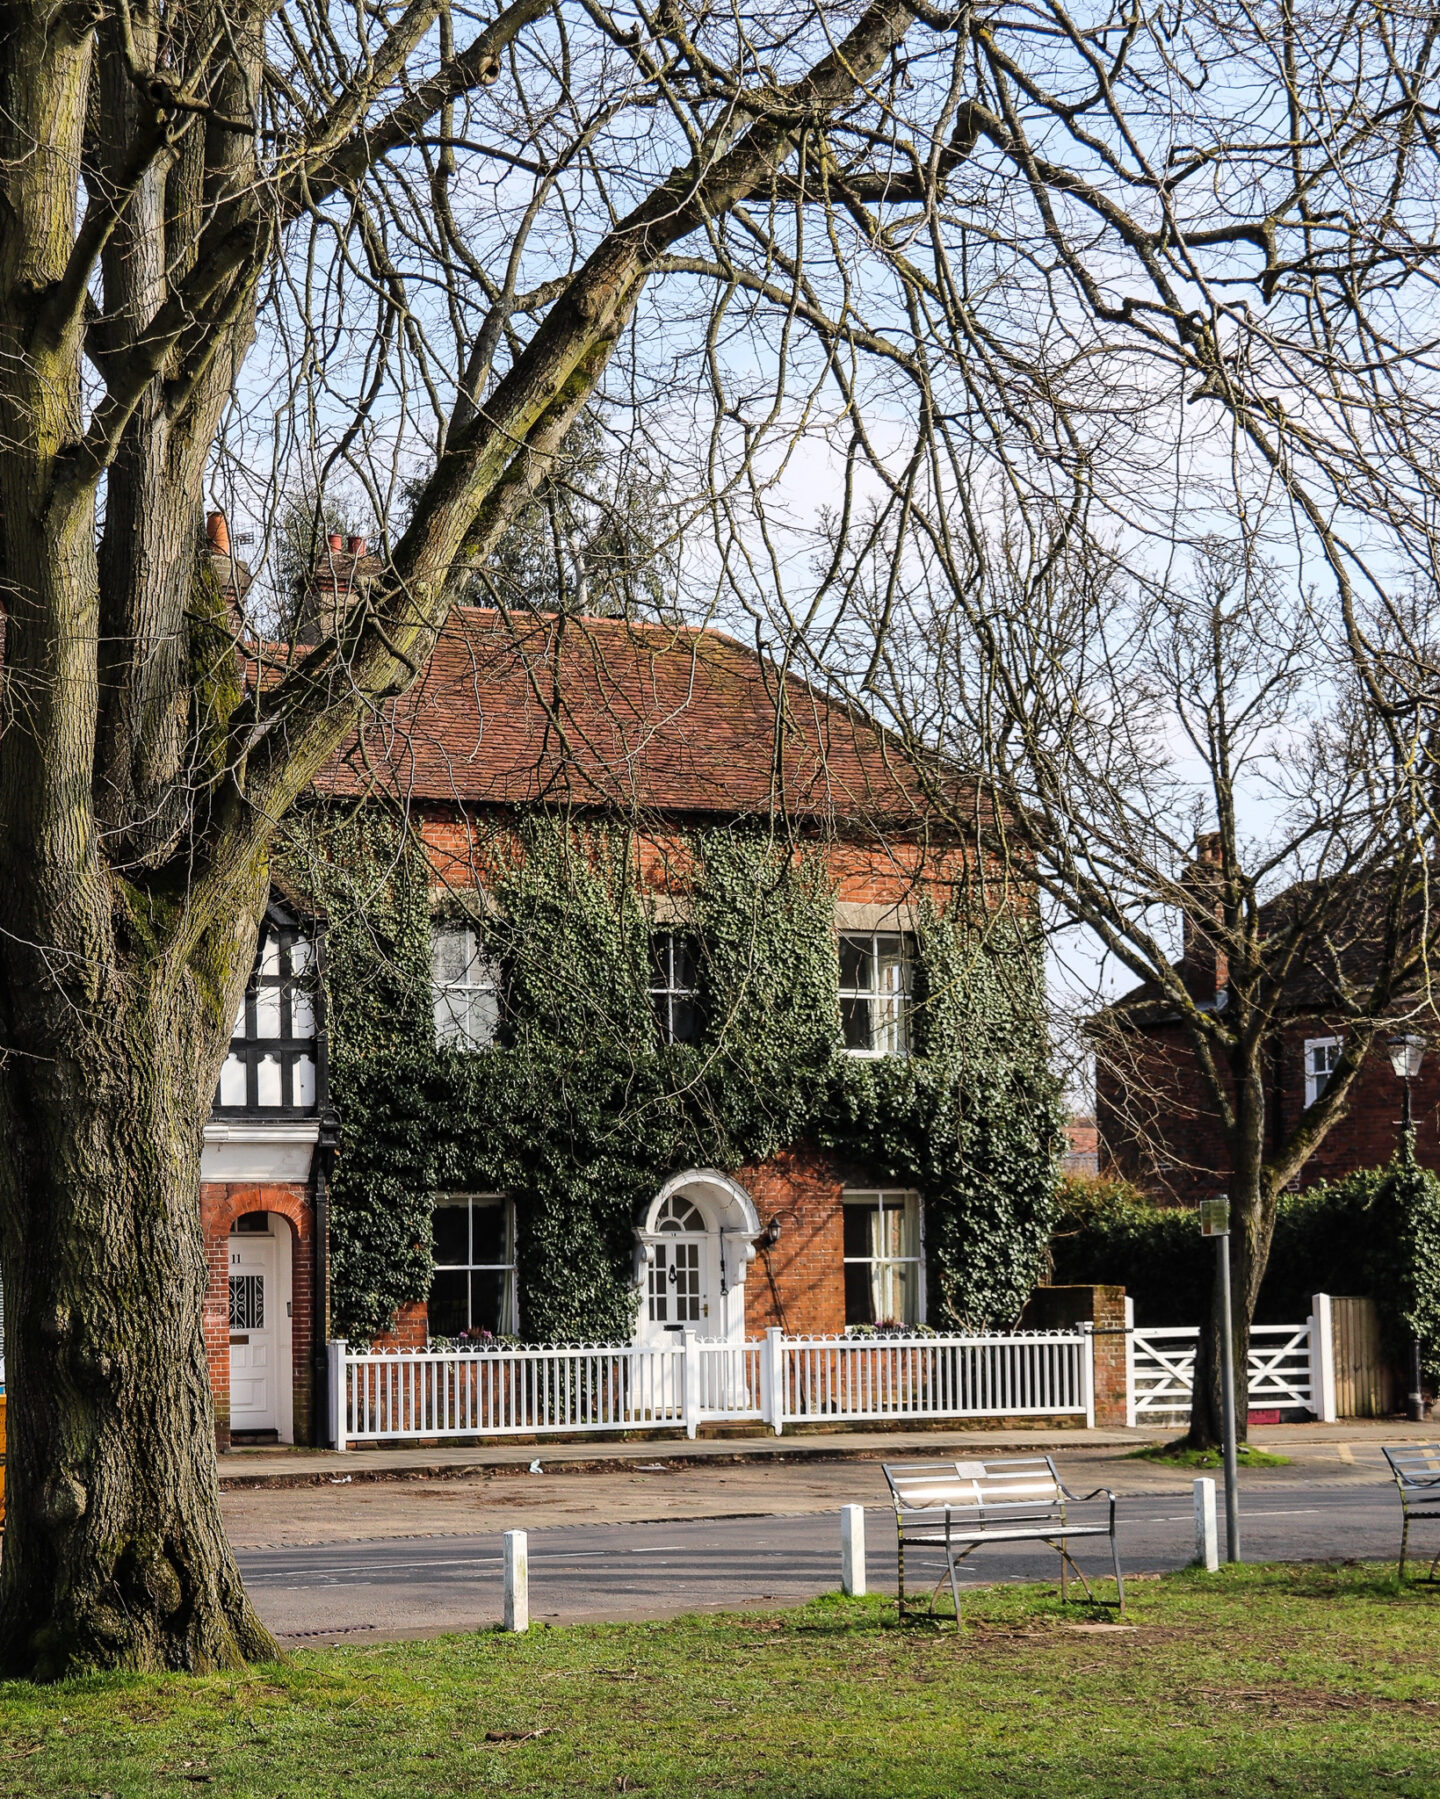 One of the pretty houses in the village square of Beaconsfield Old Town